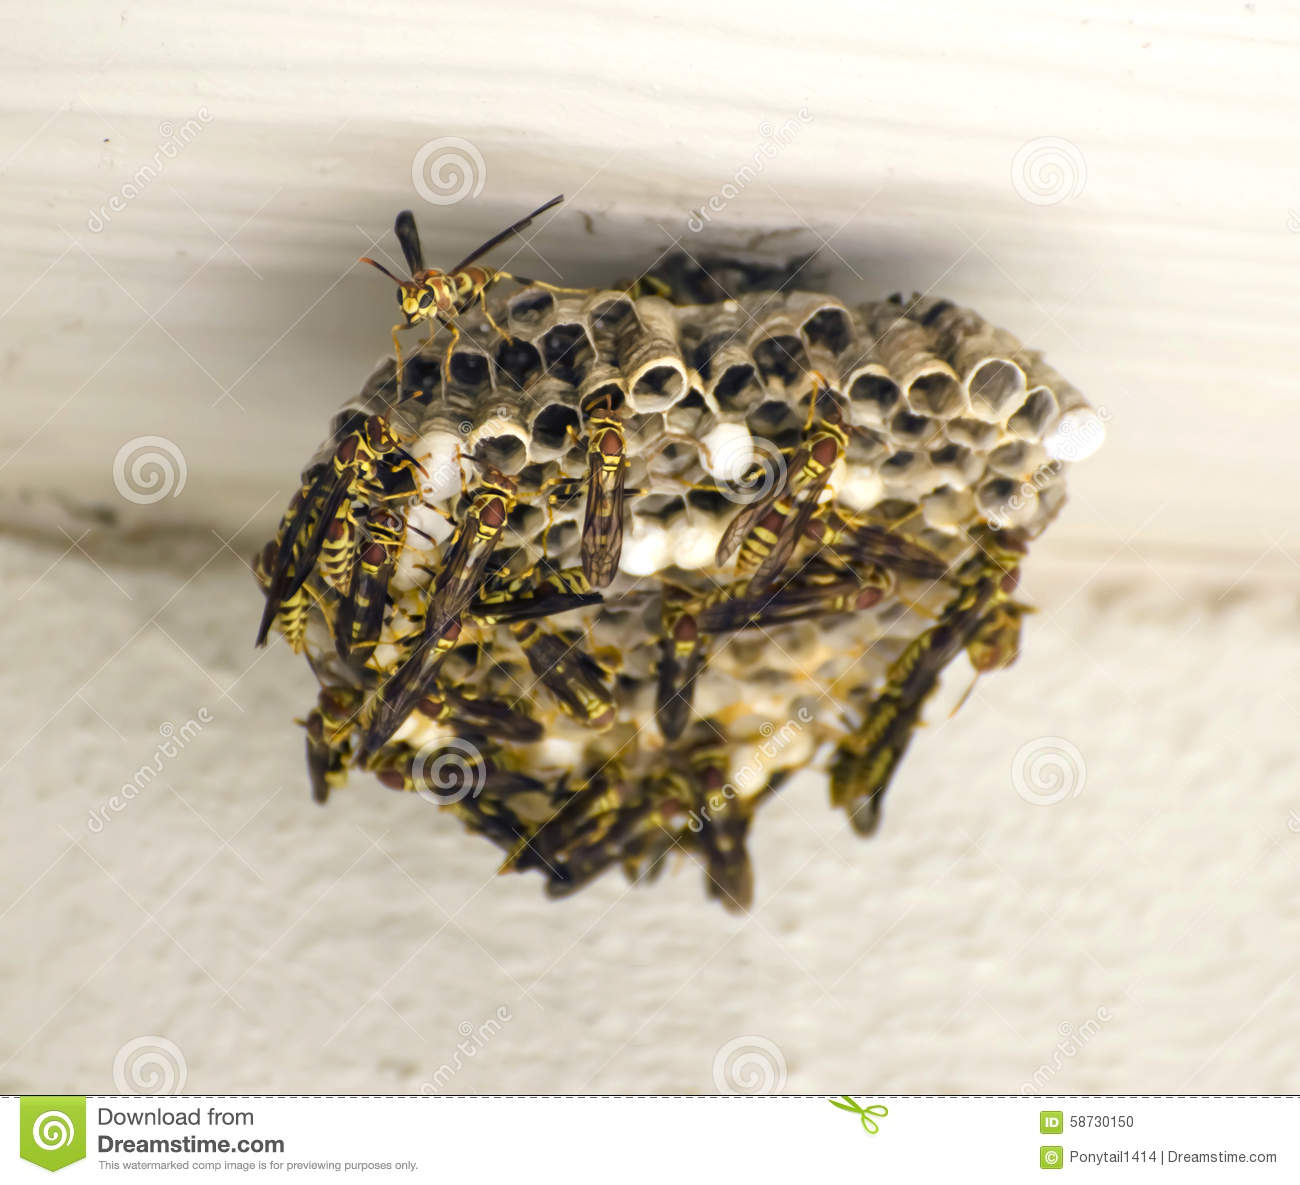 Hymenoptera Stock Photos, Images, & Pictures.